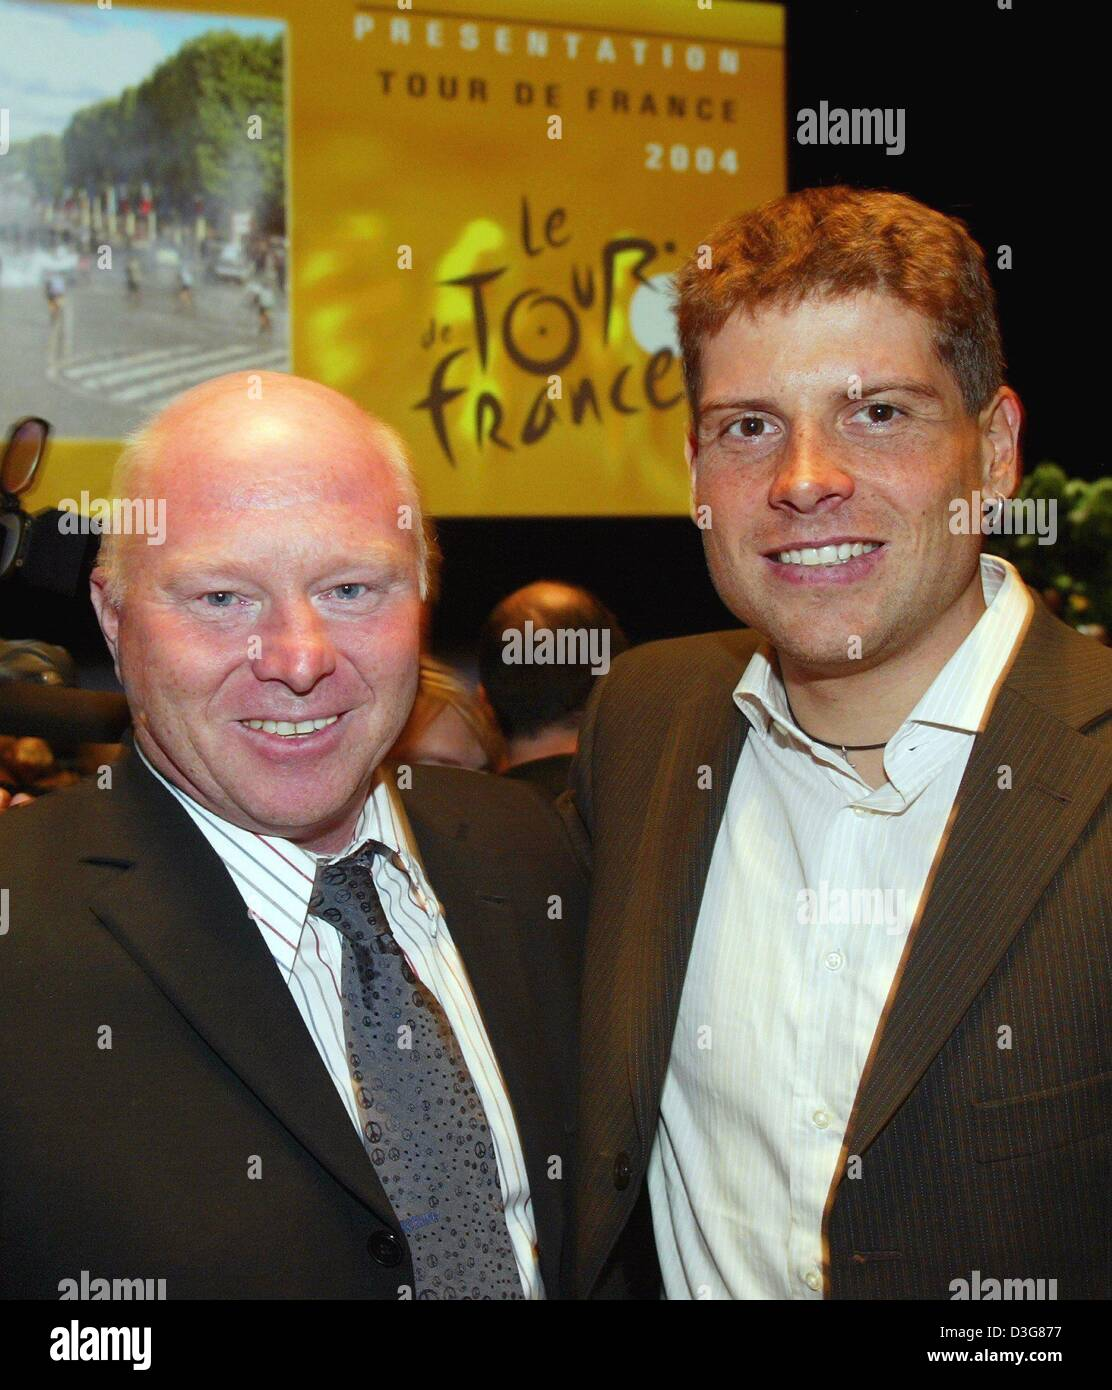 (dpa) - German cycling pro Jan Ullrich (R) stands next to his personal assistant Rudy Pevenage and smiles during - Stock Image